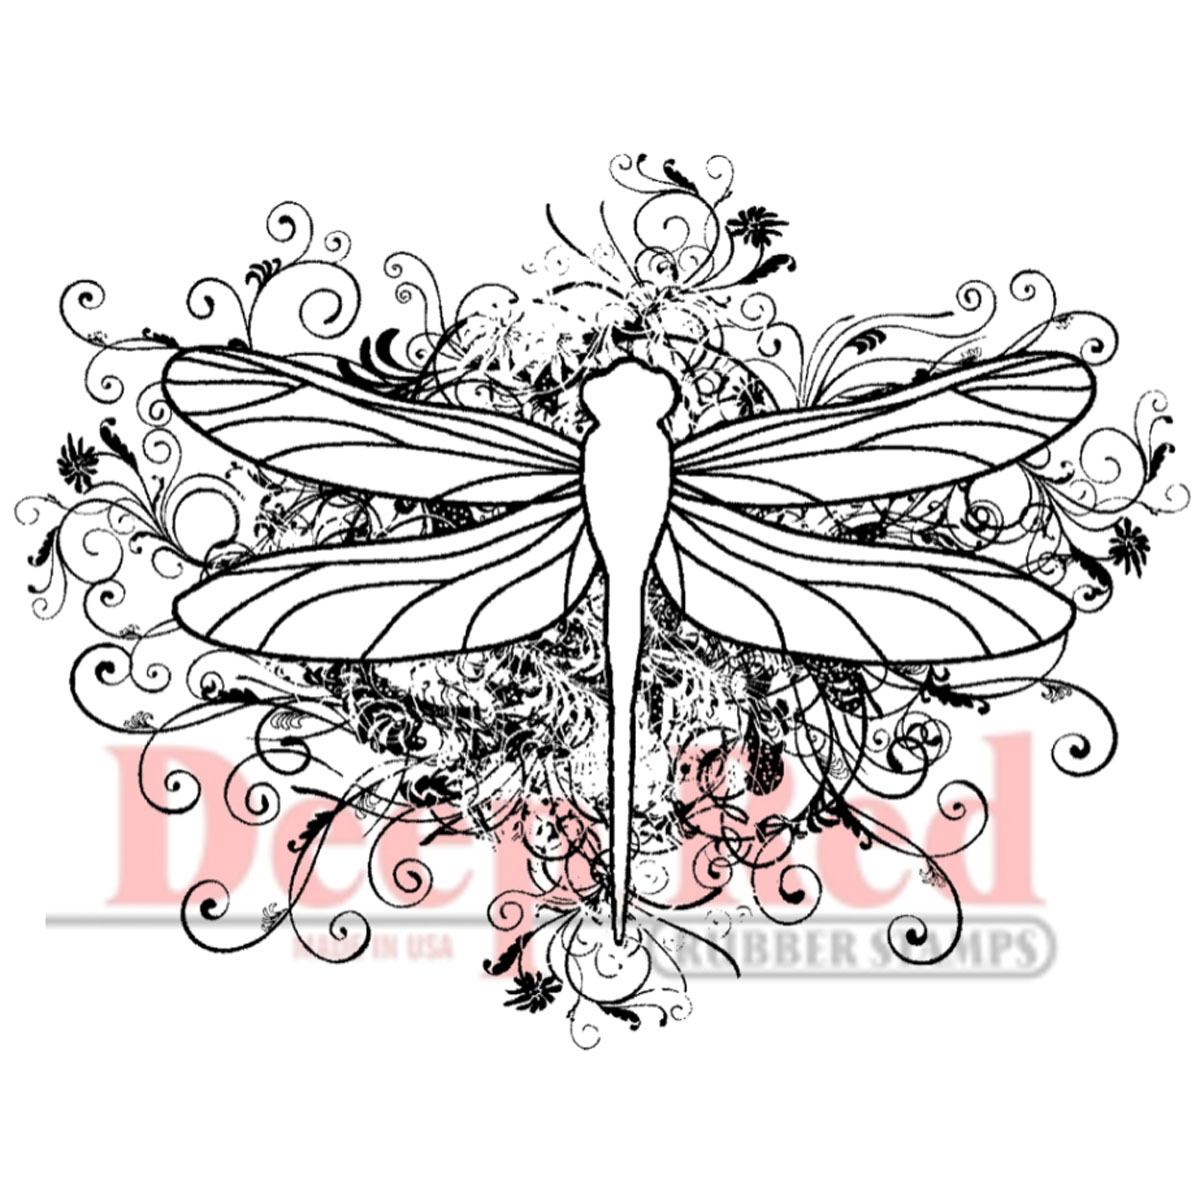 Deep Red Stamps Cling Stamp Dragonfly Flourish